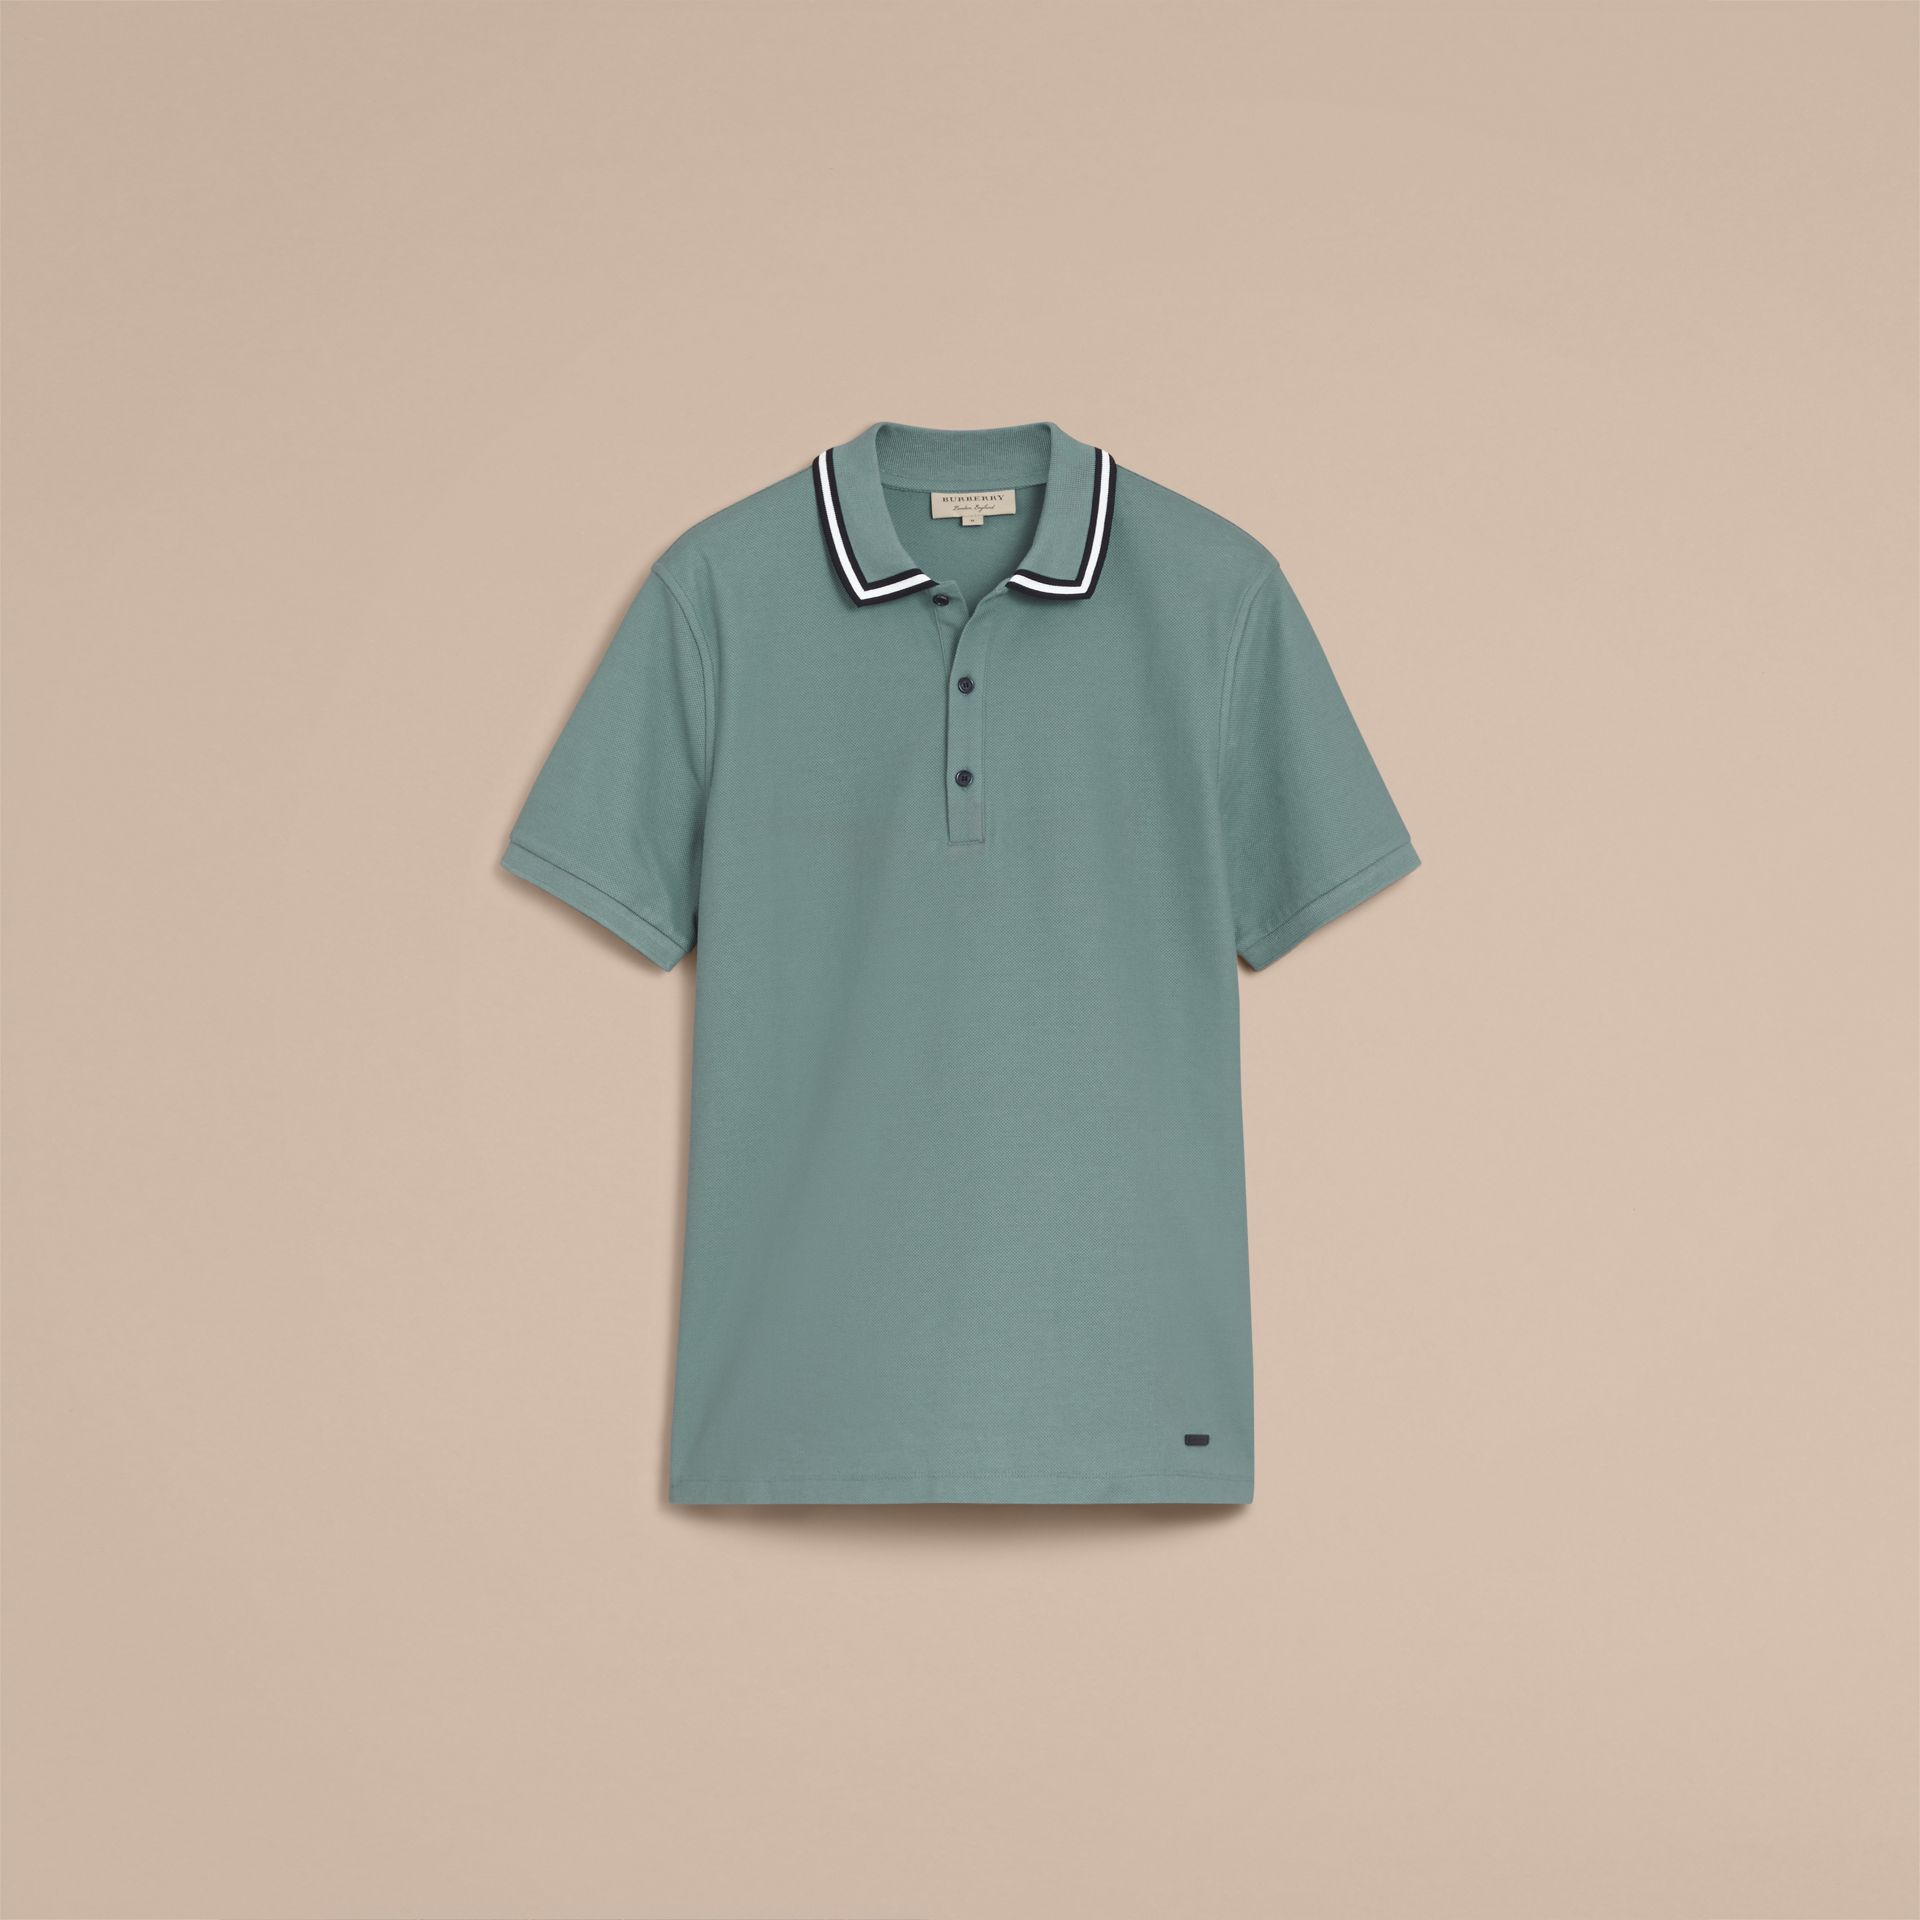 Striped Collar Cotton Piqué Polo Shirt in Pale Teal Blue - Men | Burberry - gallery image 4